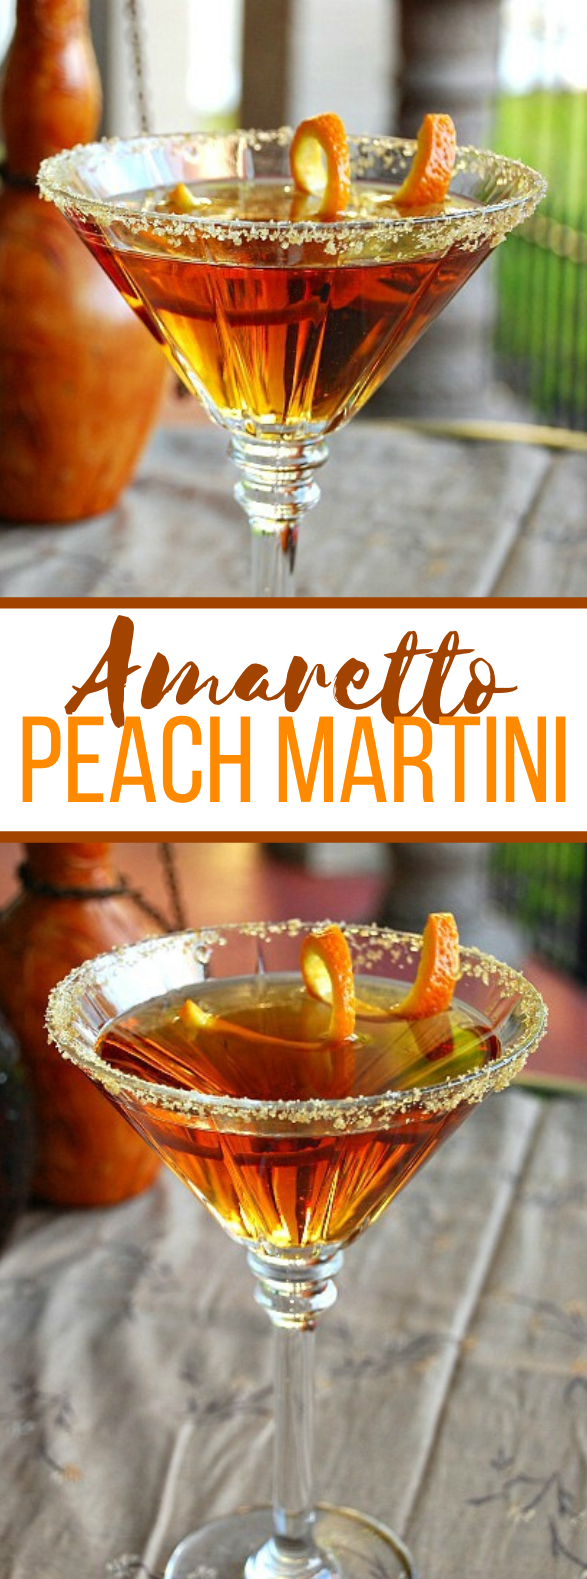 AMARETTO PEACH MARTINI #drinks #cockatils